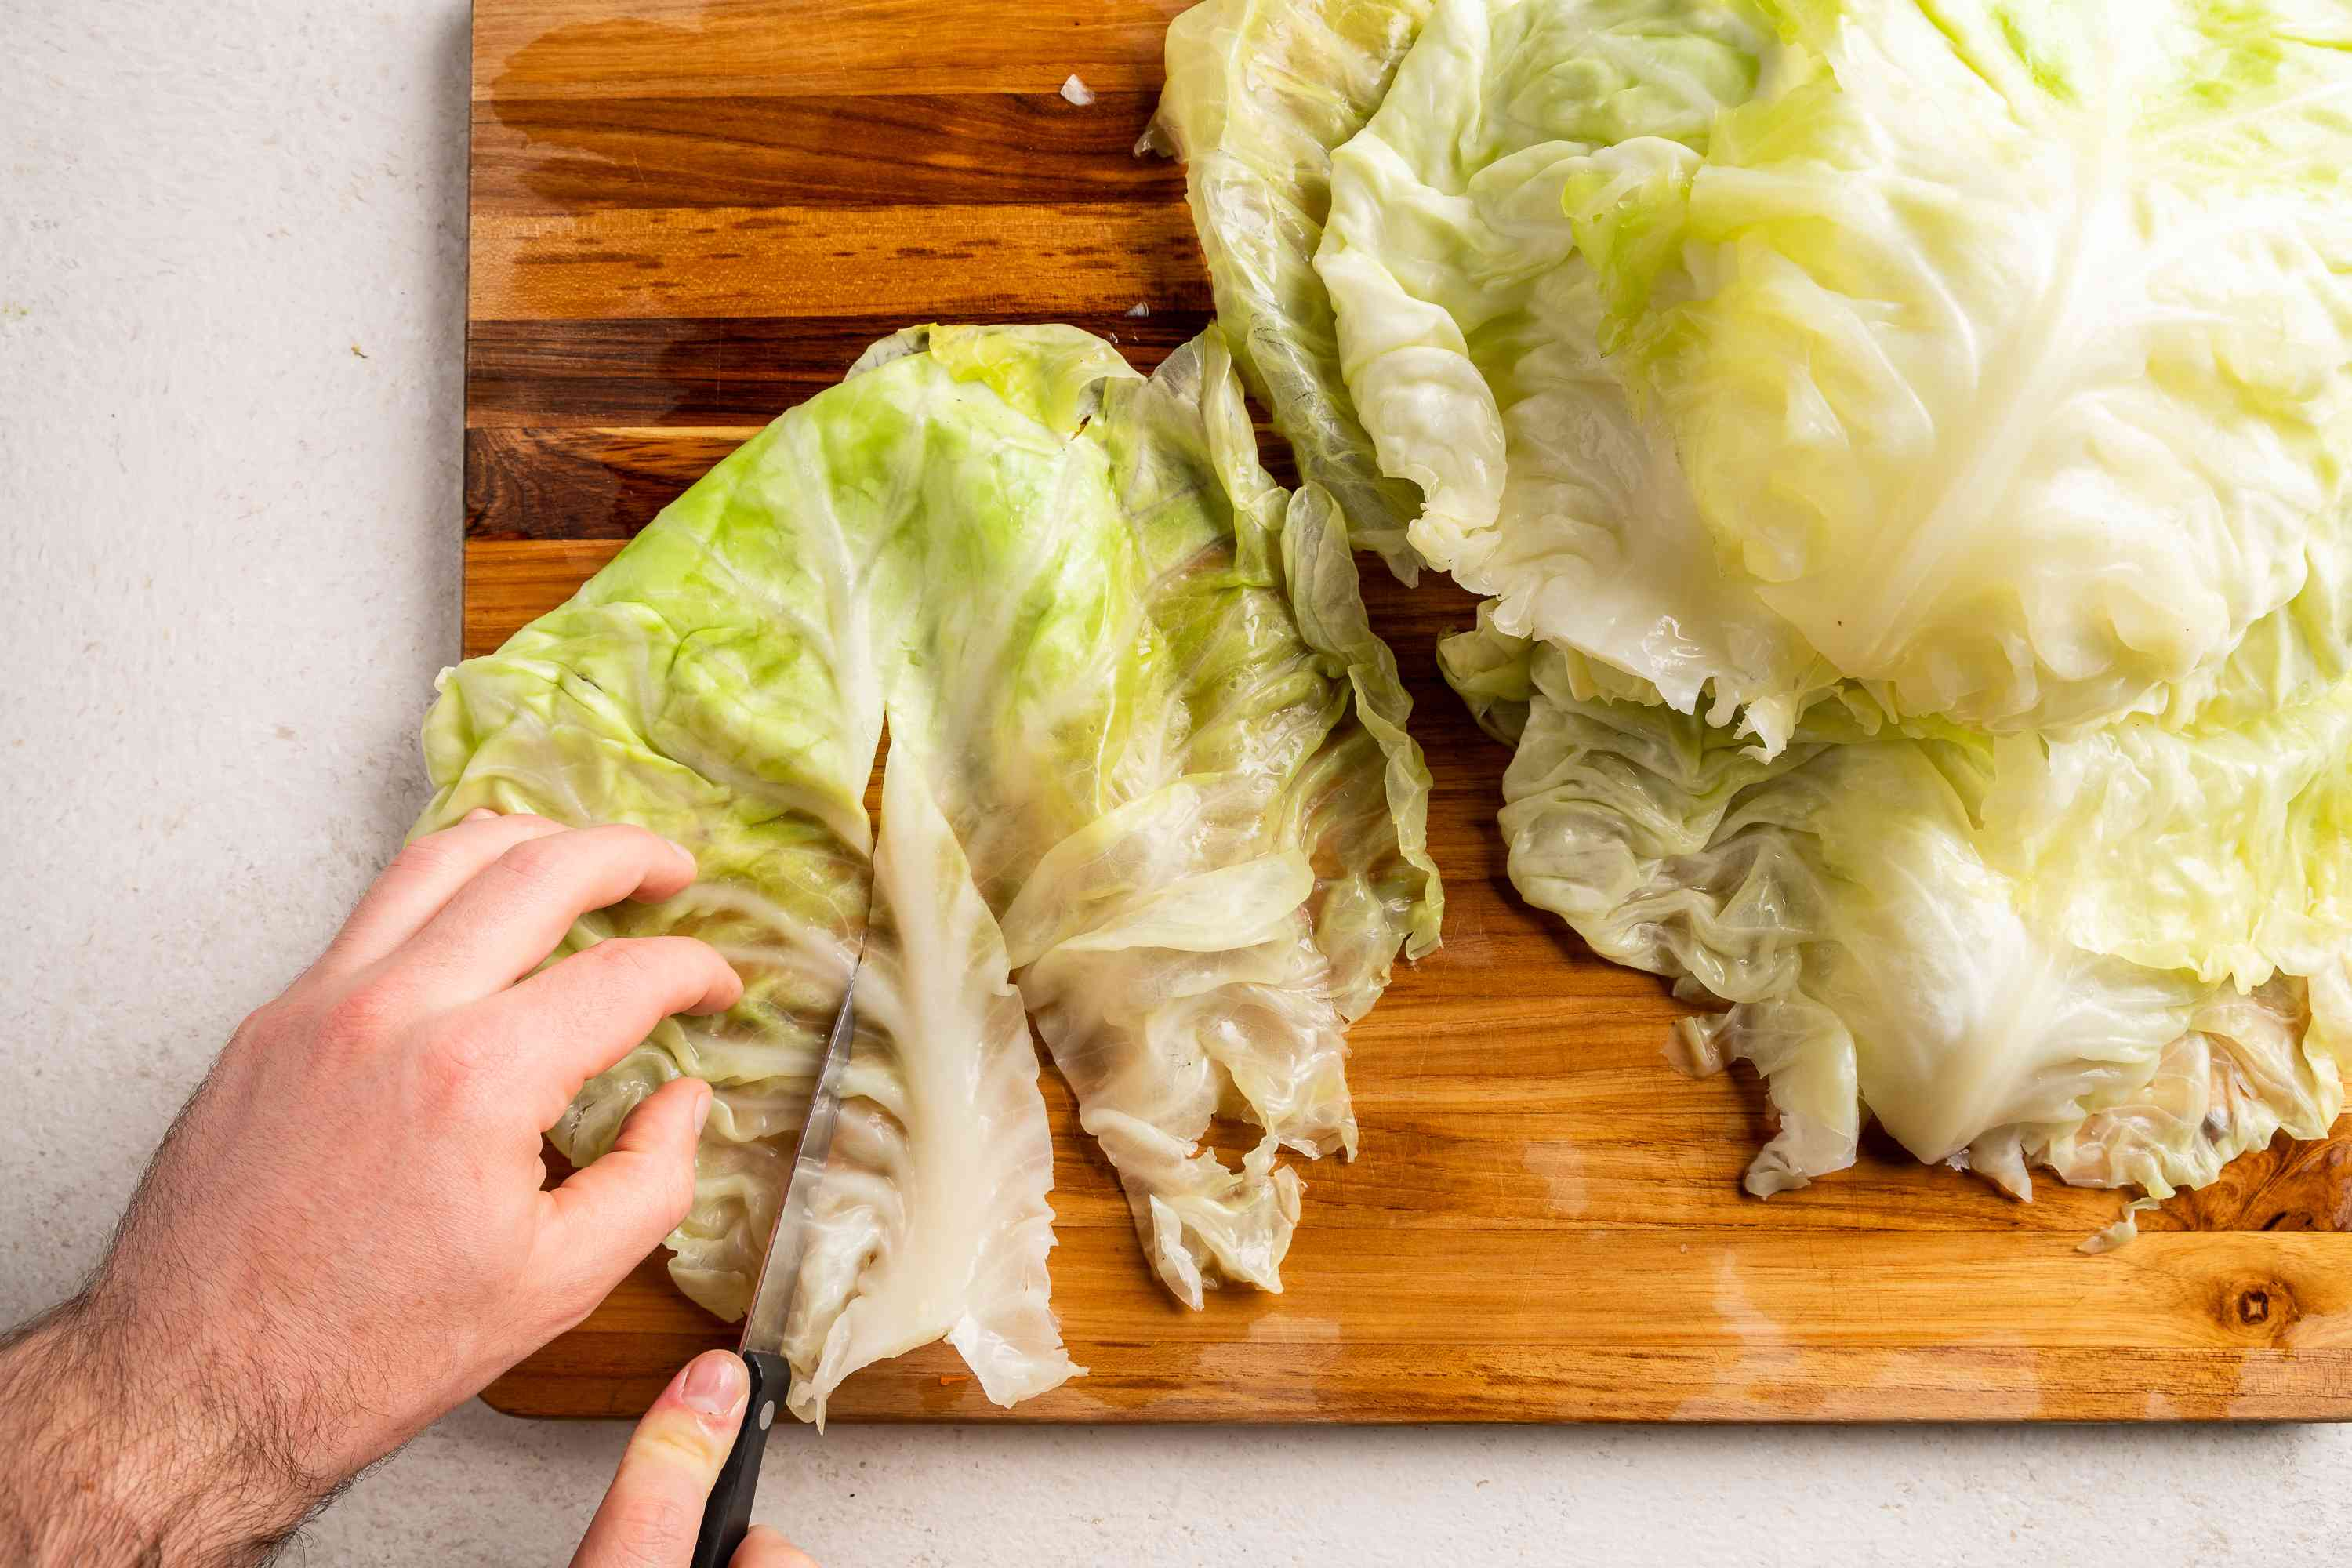 cut off the thick white portion in the middle of each cabbage leaf